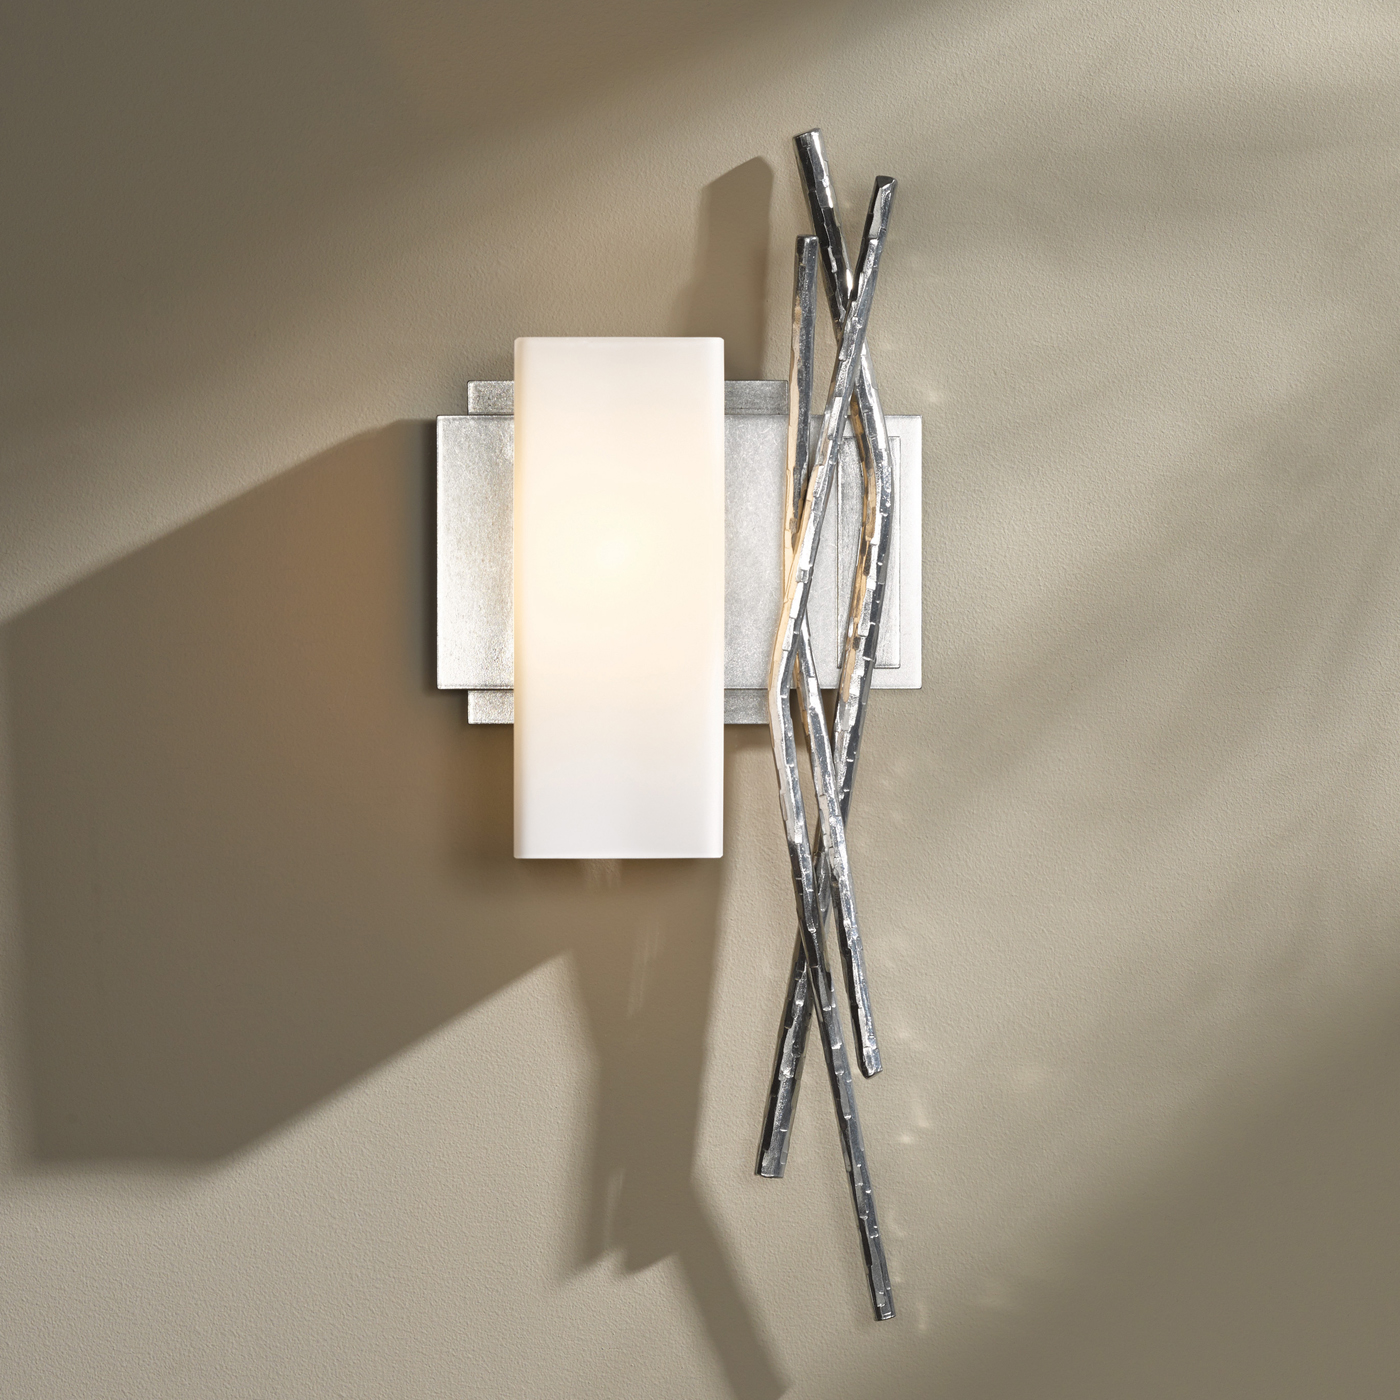 Image of: Fixture Hubbardton Forge Sconce